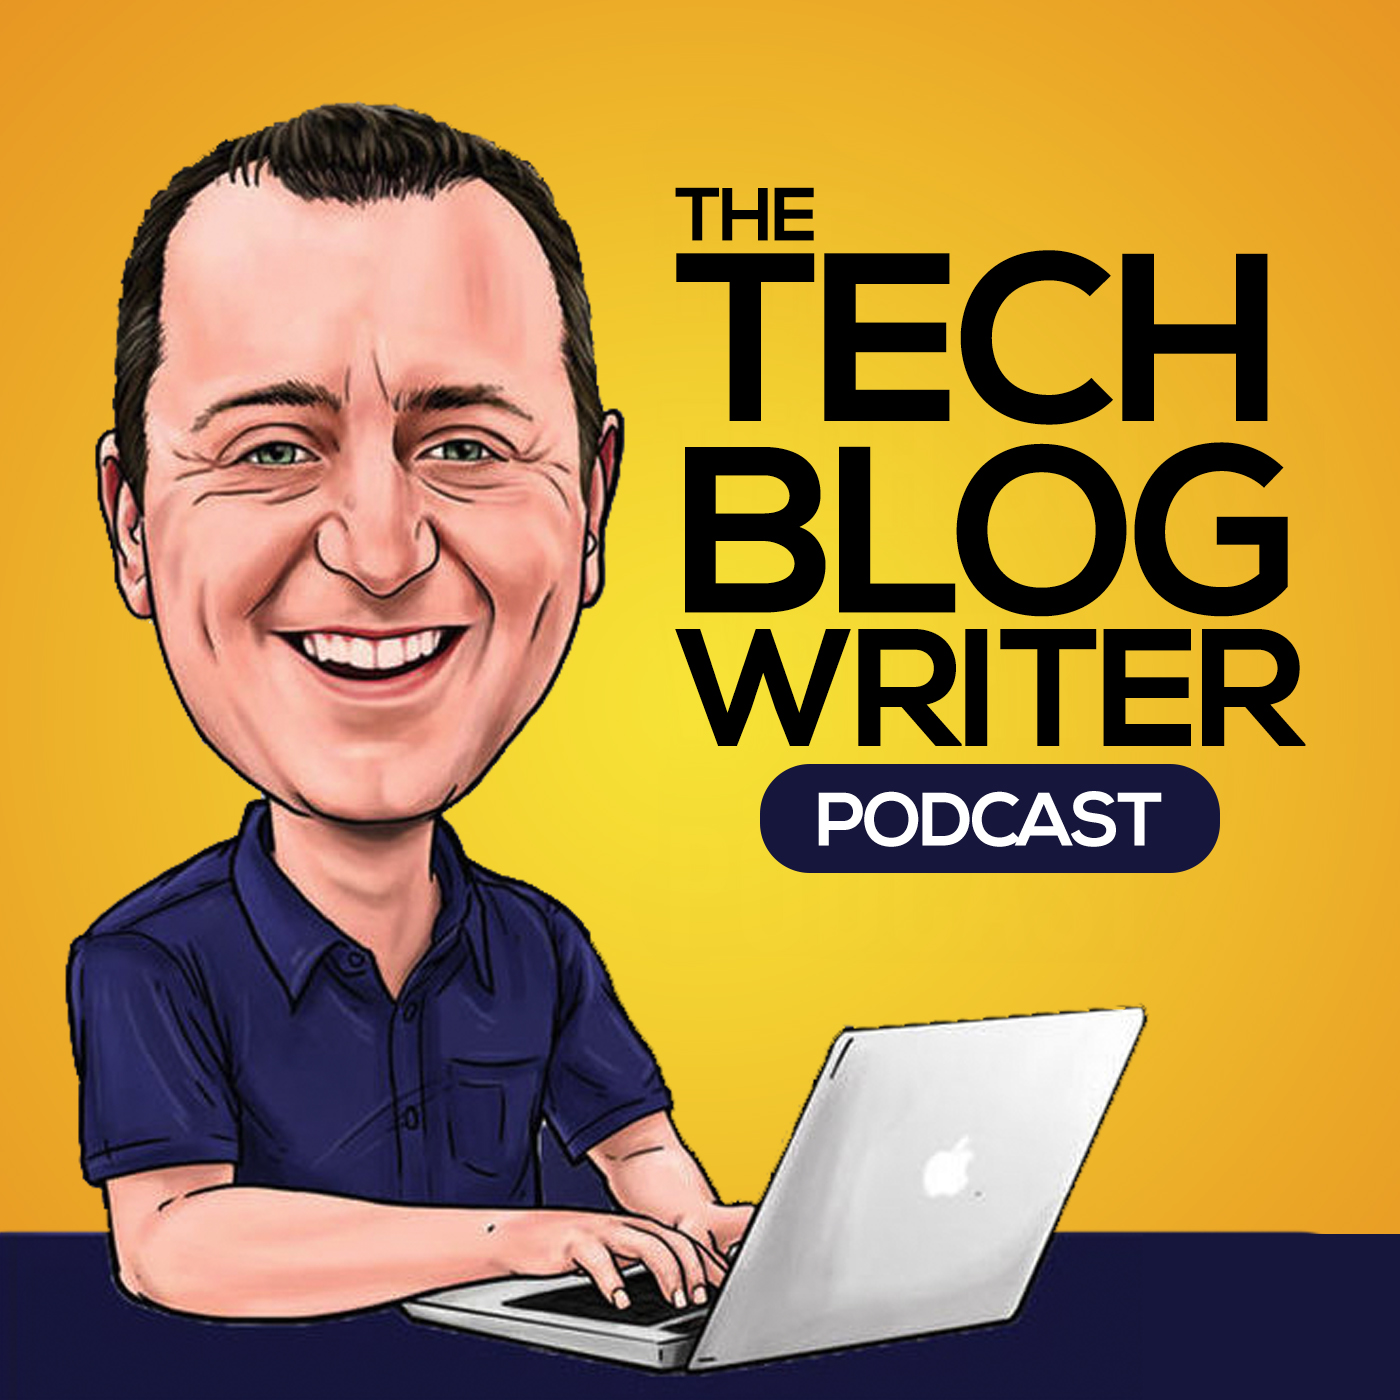 The Tech Blog Writer Podcast - Inspired Tech Startup Stories & Interviews With Tech Leaders, Entrepreneurs and Innovators  logo